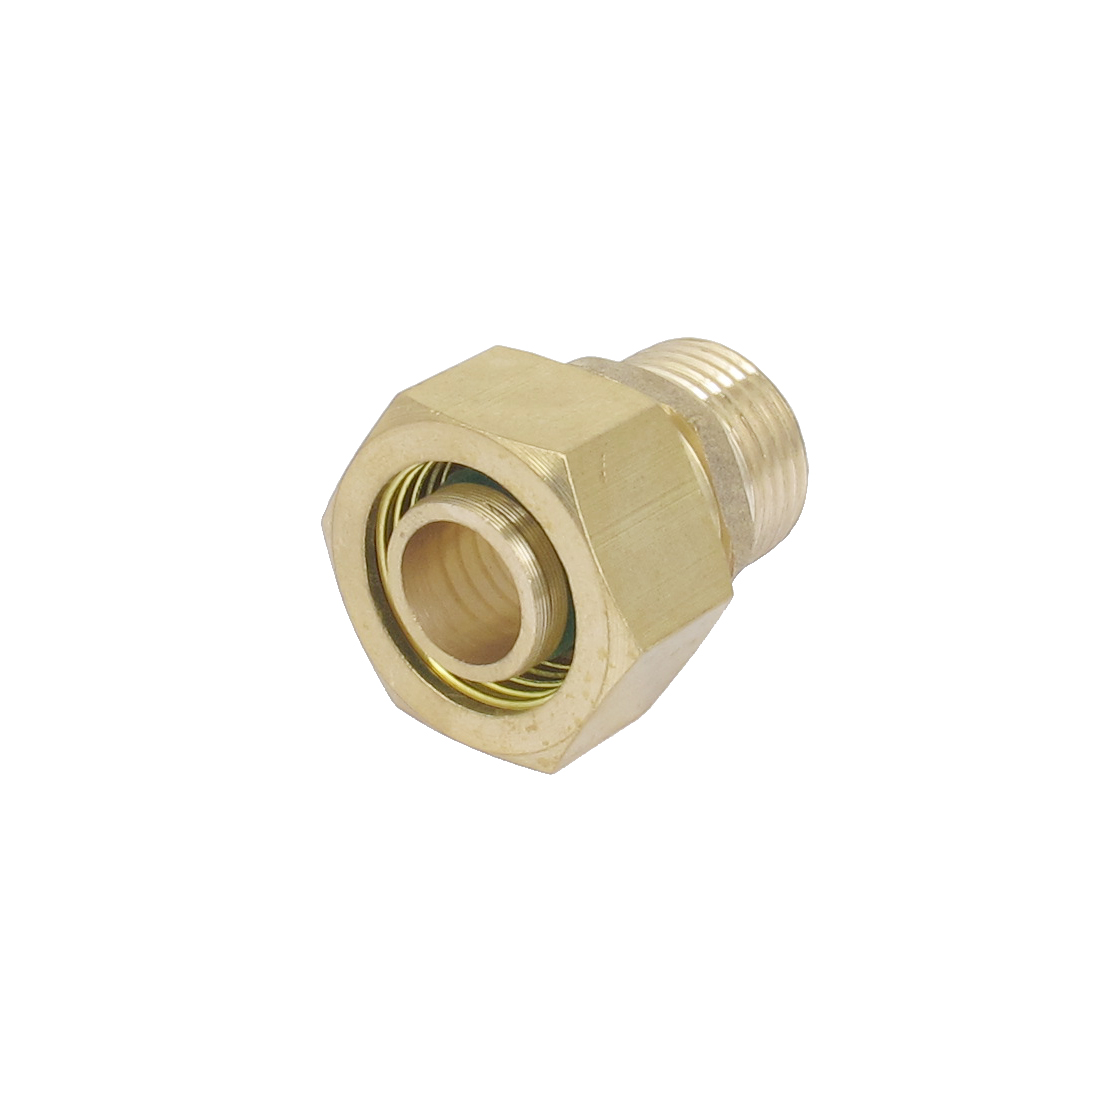 16mm x 20mm Male Thread Brass Hex Nipple Connector Couplers Gold Tone